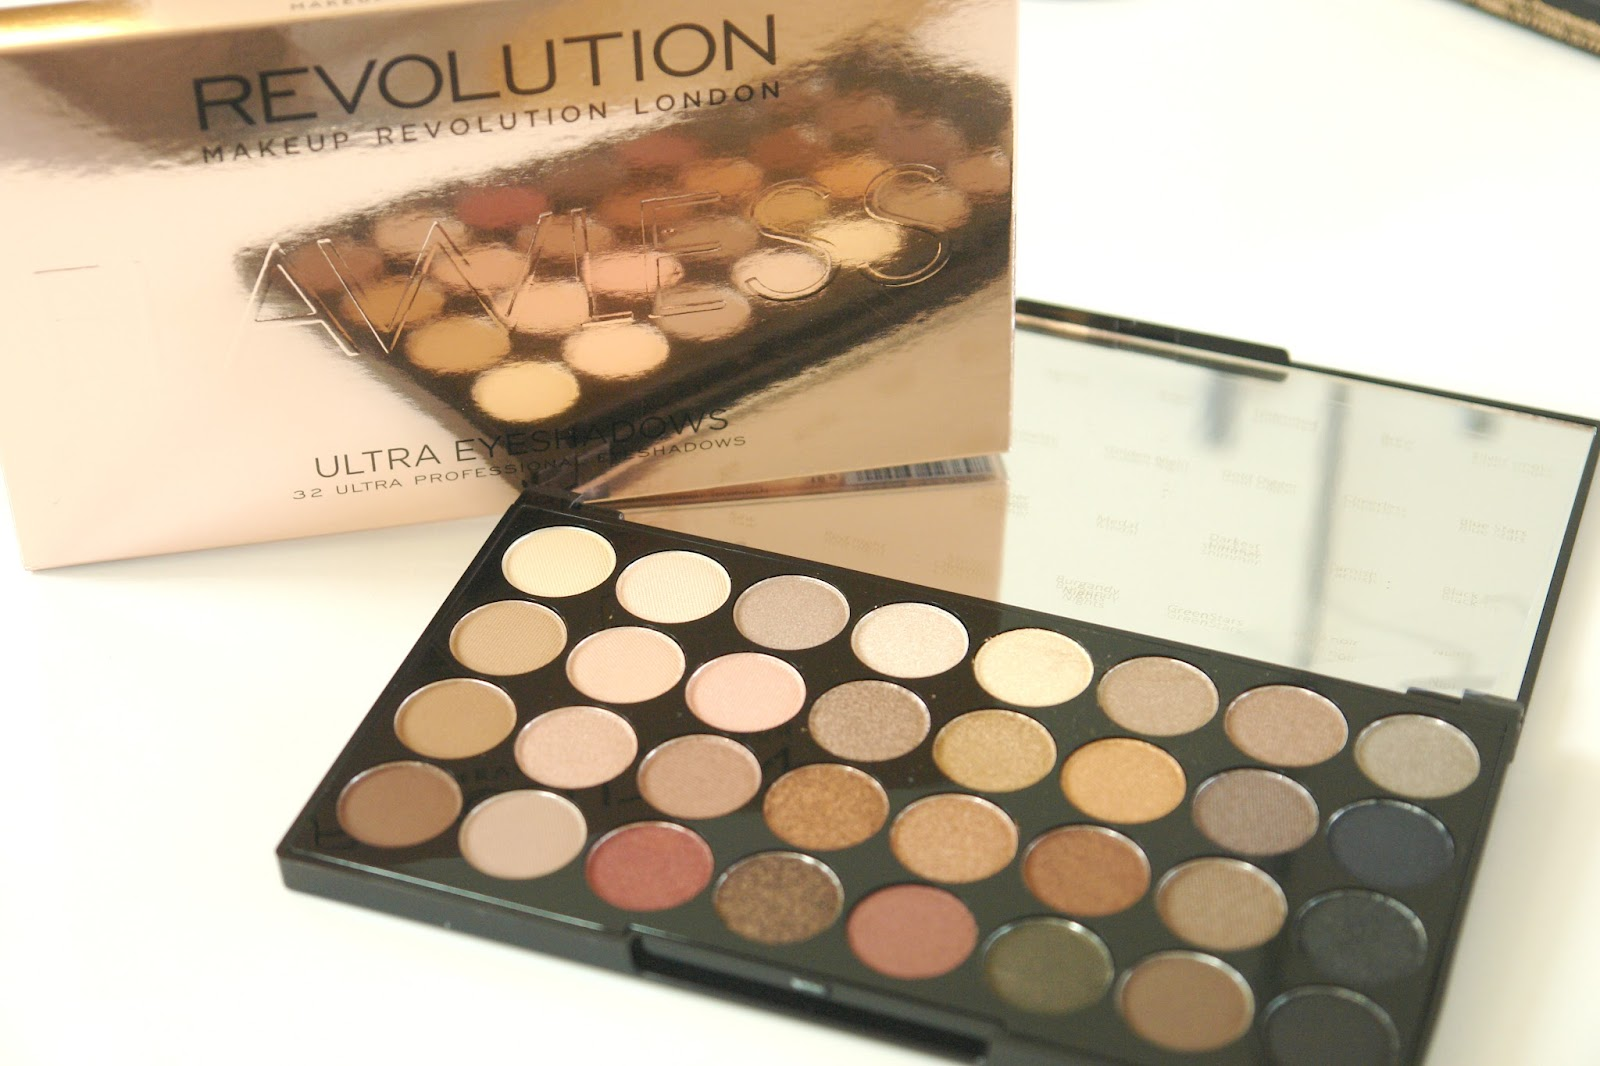 Makeup Revloution Ultra 32 Shade Eyeshadow Palette FLAWLESS, palette, eye shadows, make up, Makeup Revolution, beauty, review, blogger